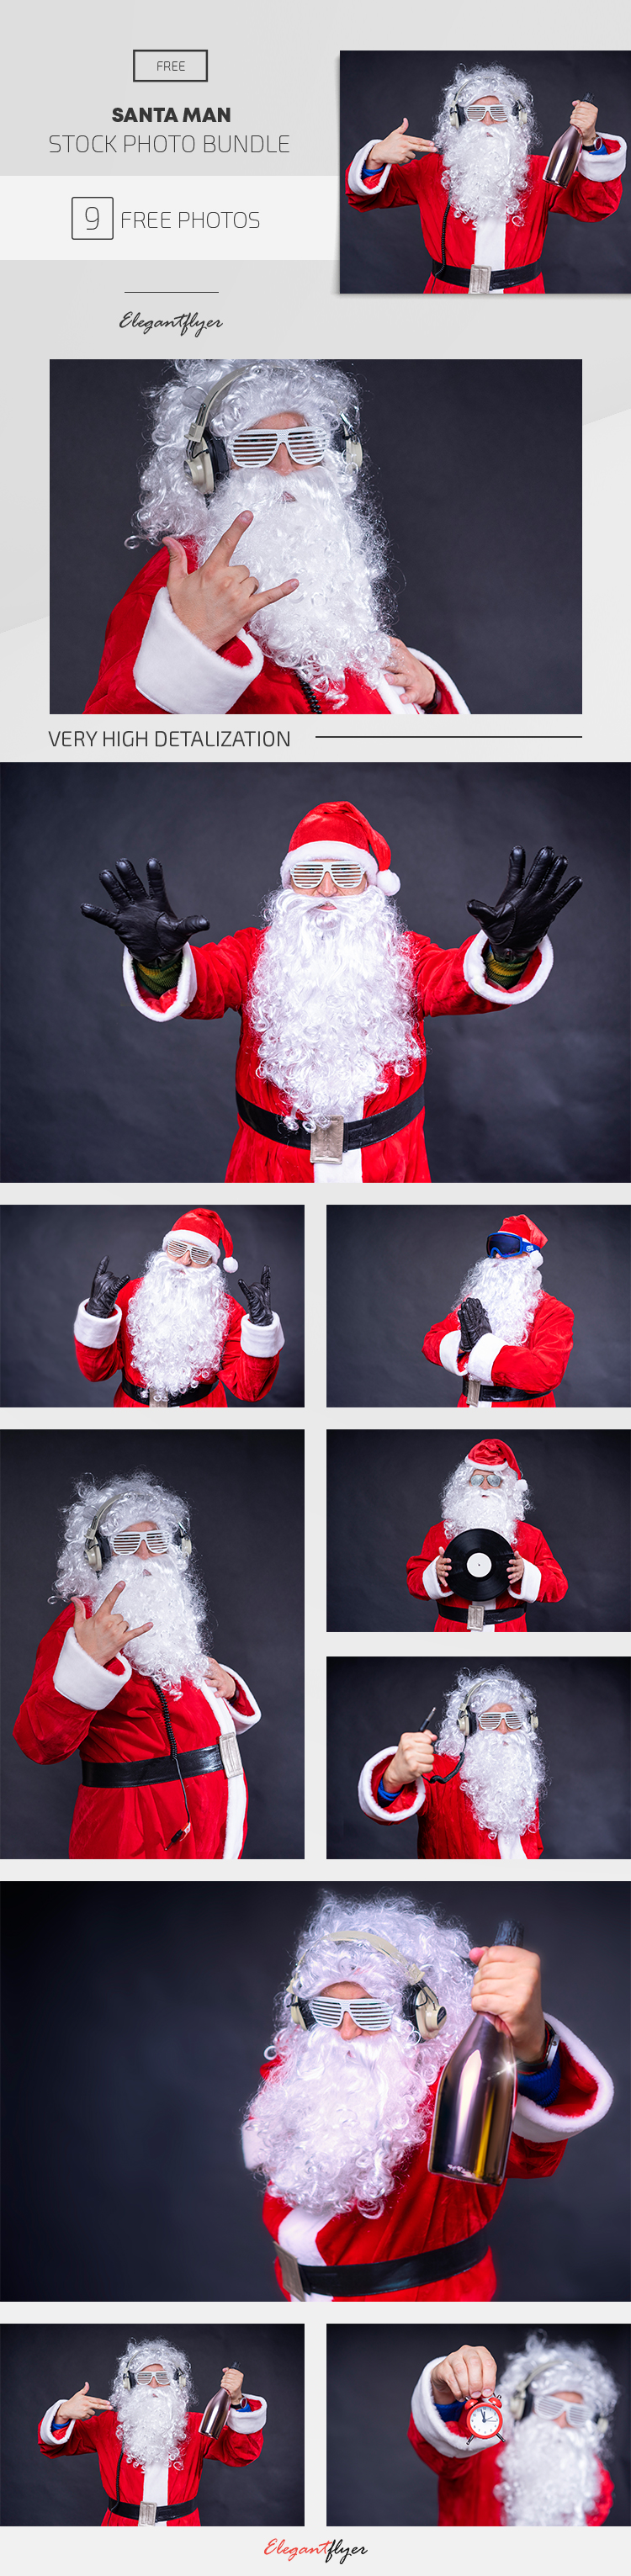 Santa Man – 9 Free Stock Photos Bundle